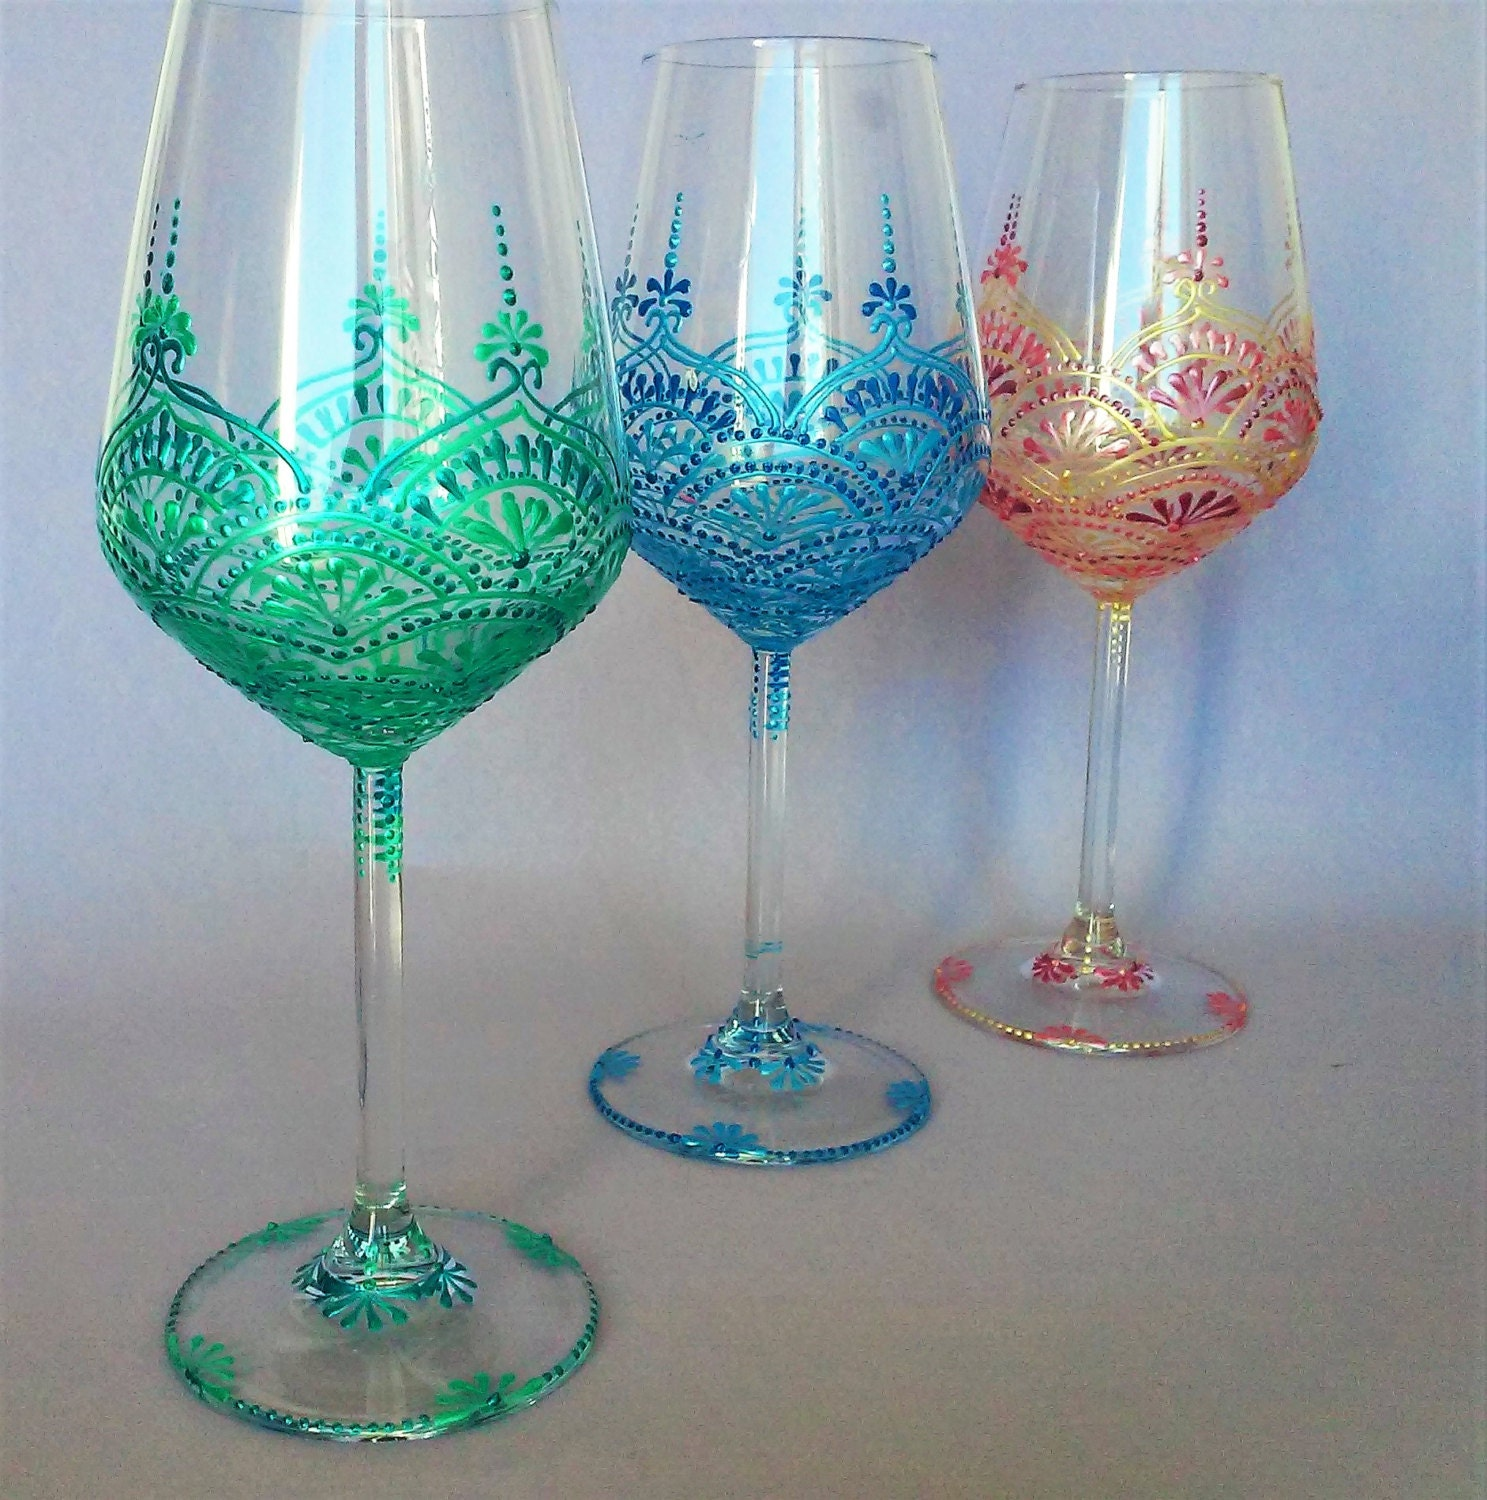 Hand painted wine glasses decorative wine glasses wedding for Hand painted wine glasses